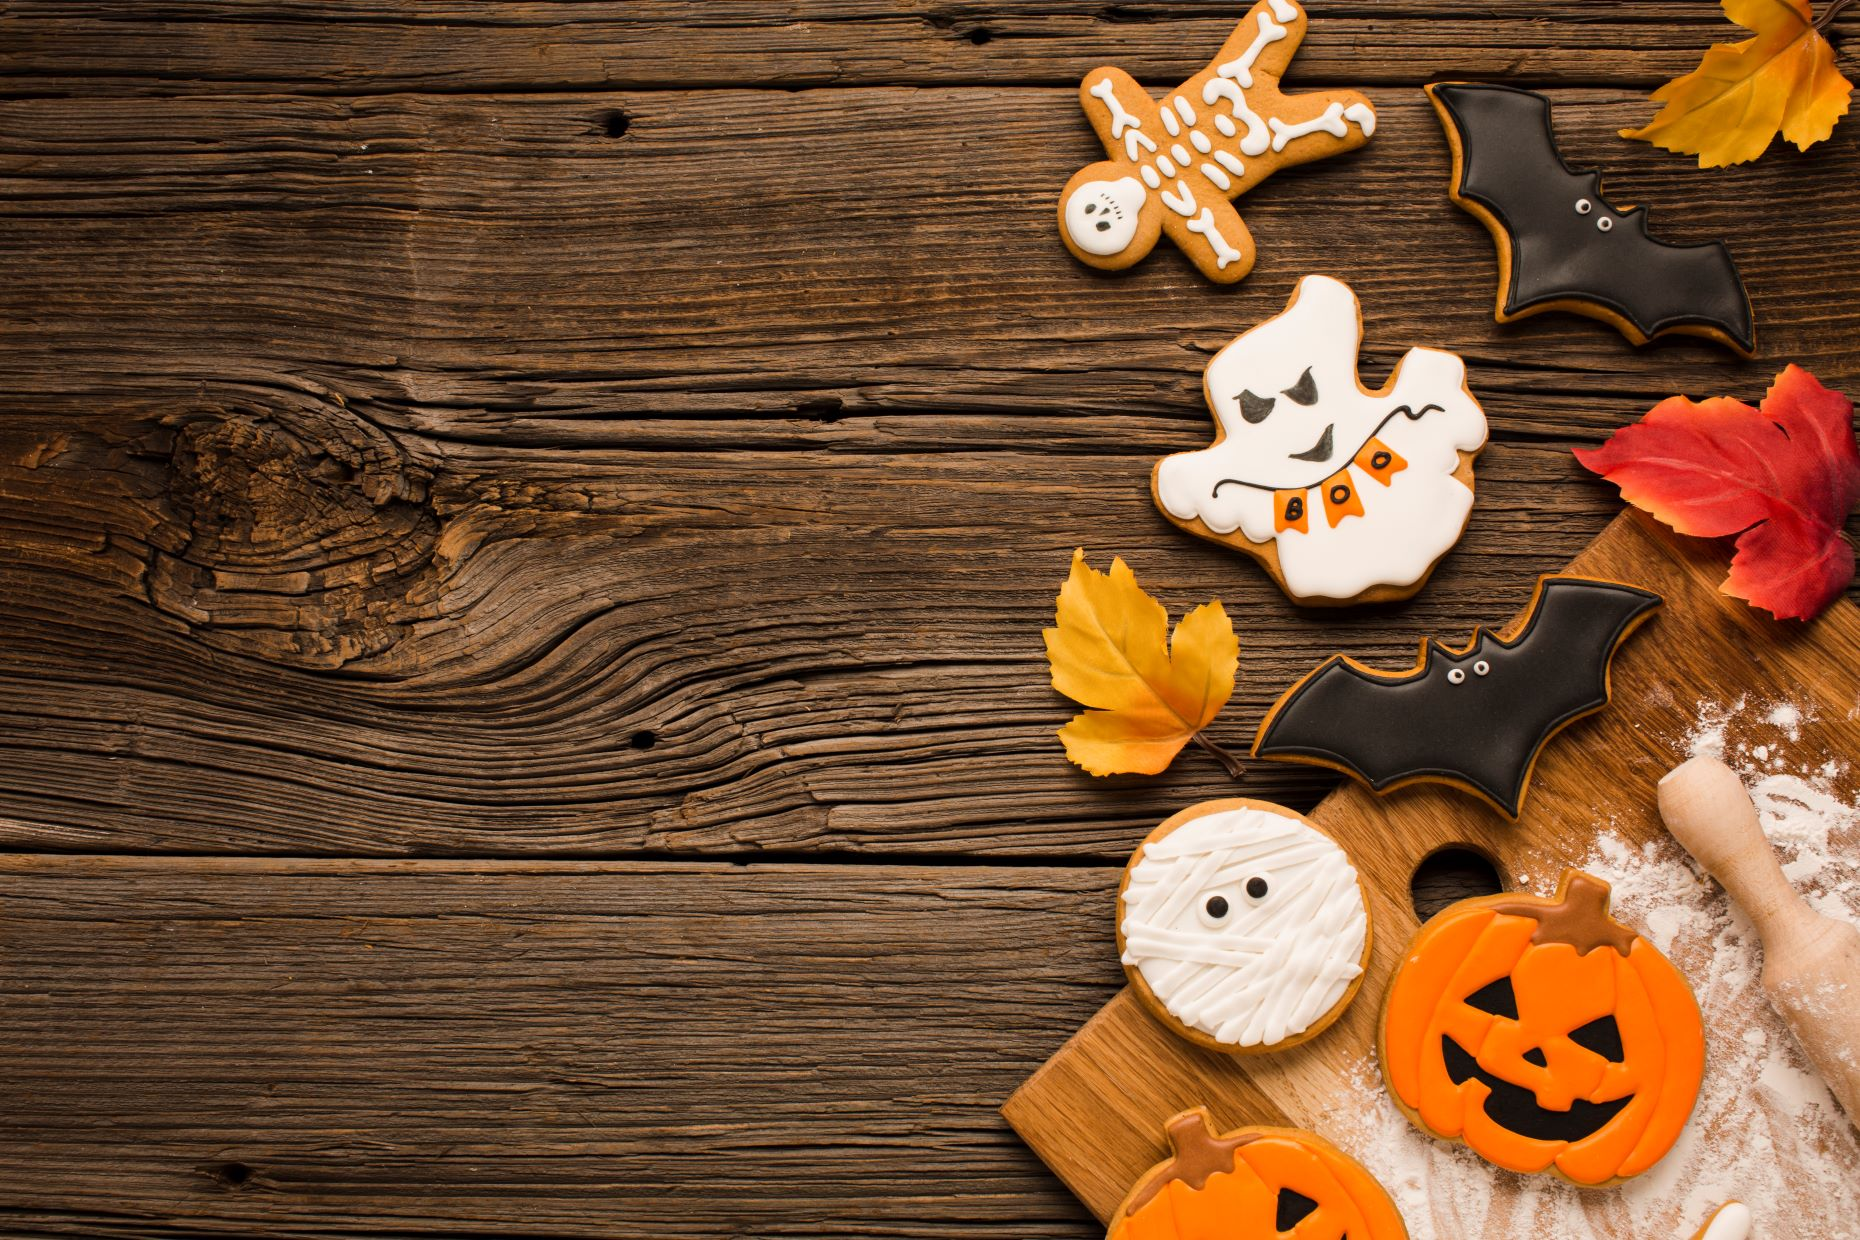 Wooden table with Halloween-themed cookies on it